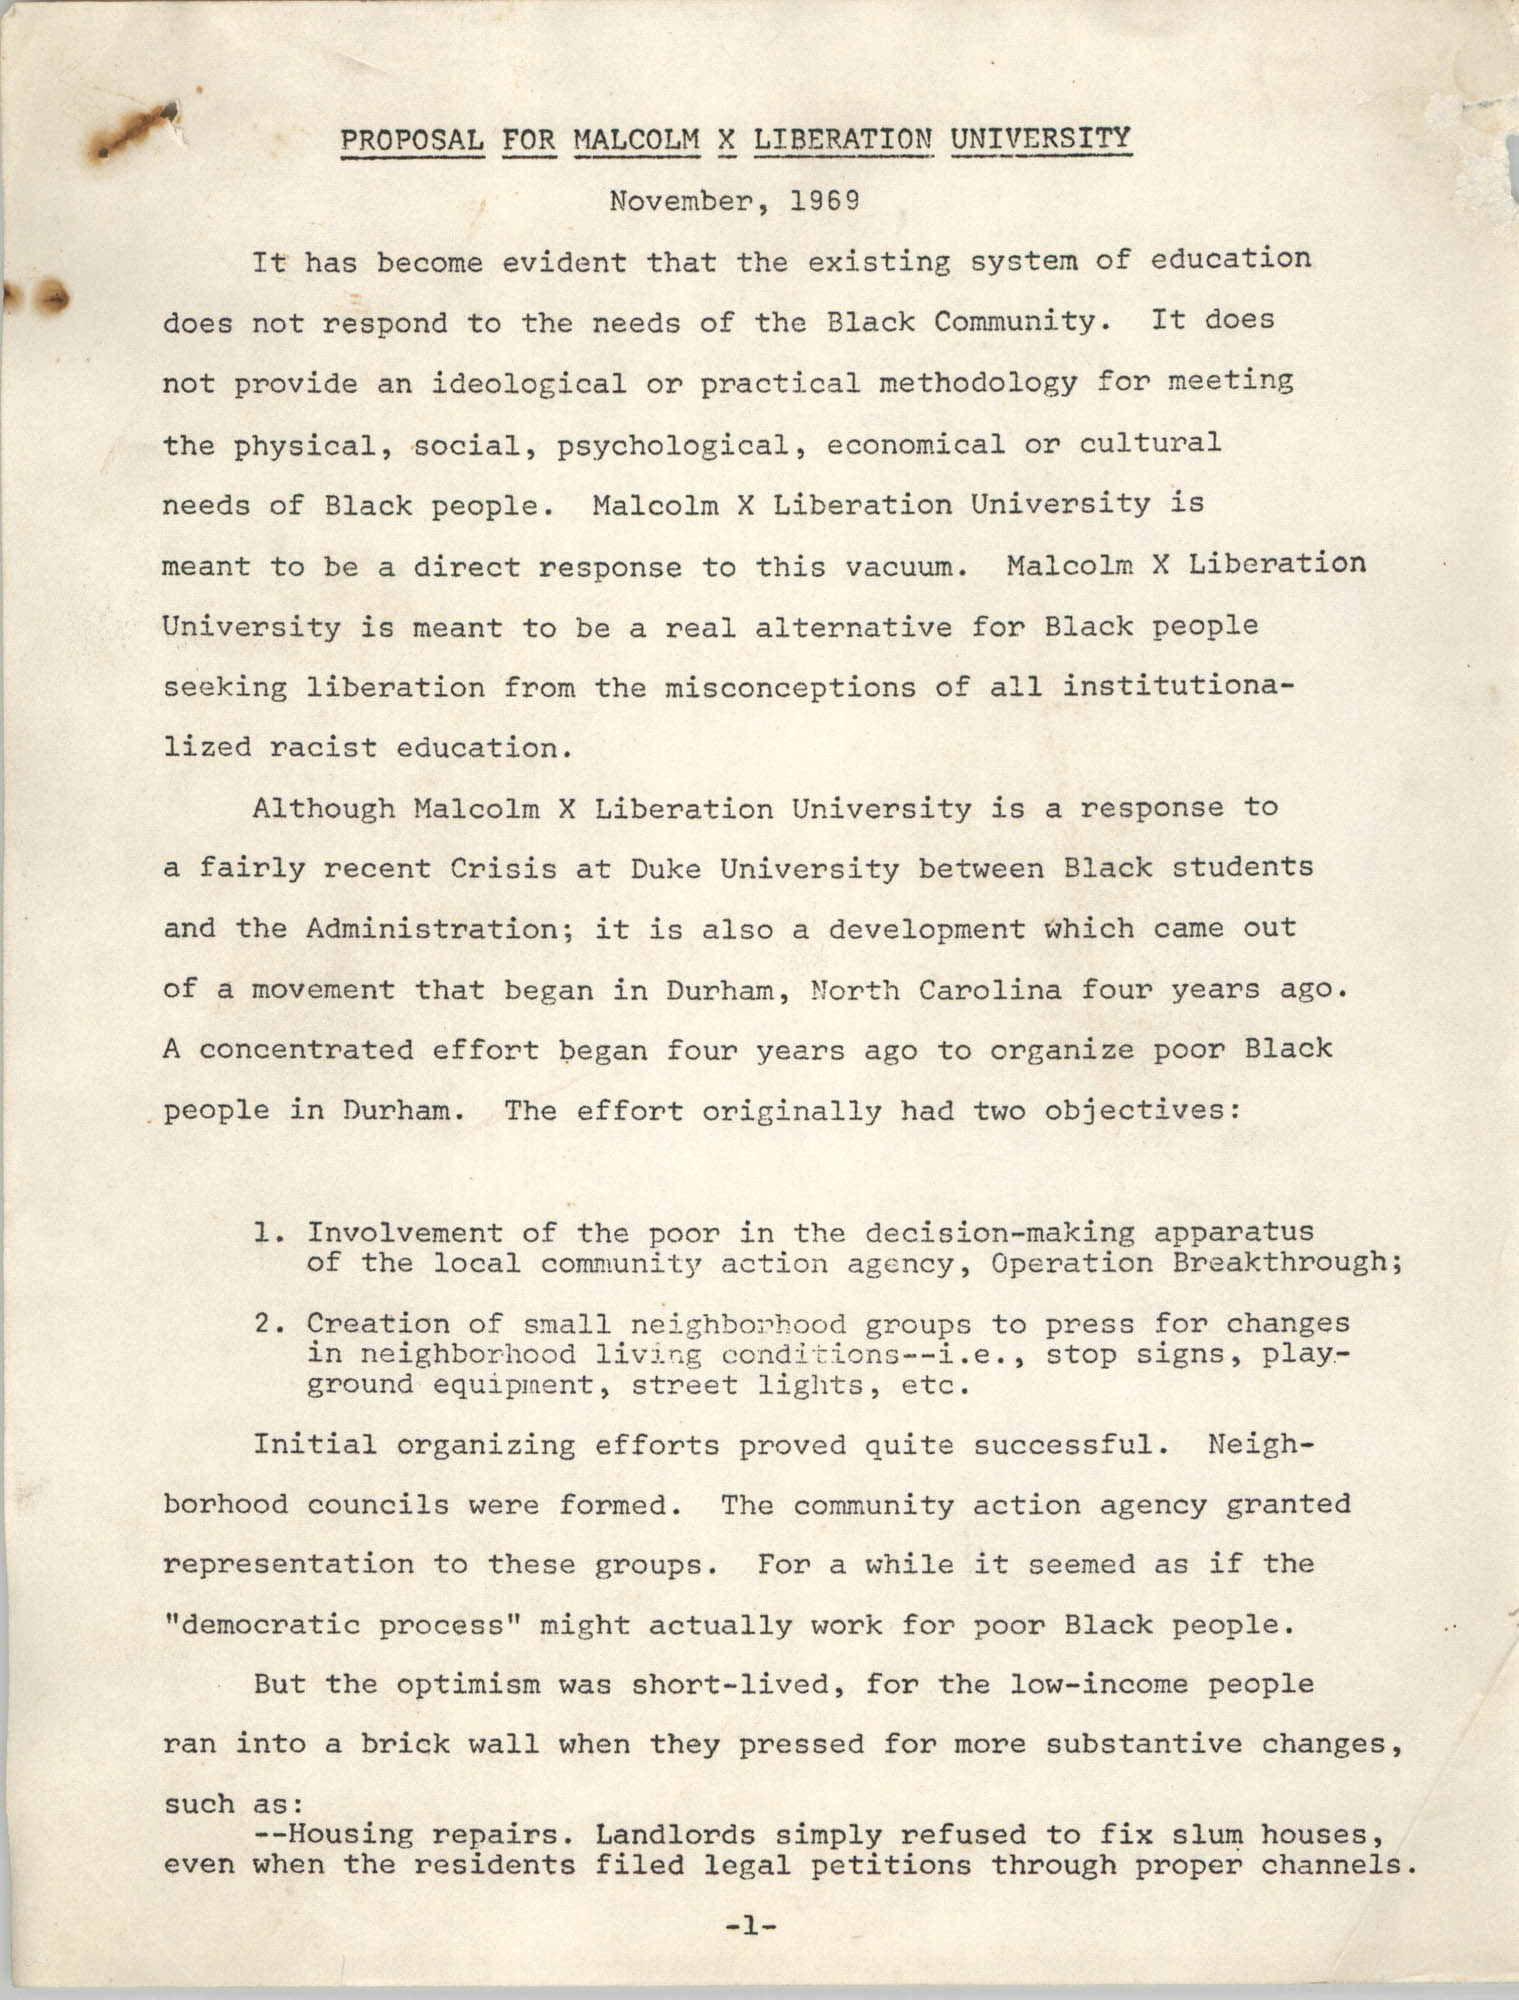 Proposal for Malcolm X Liberation University, November 1969